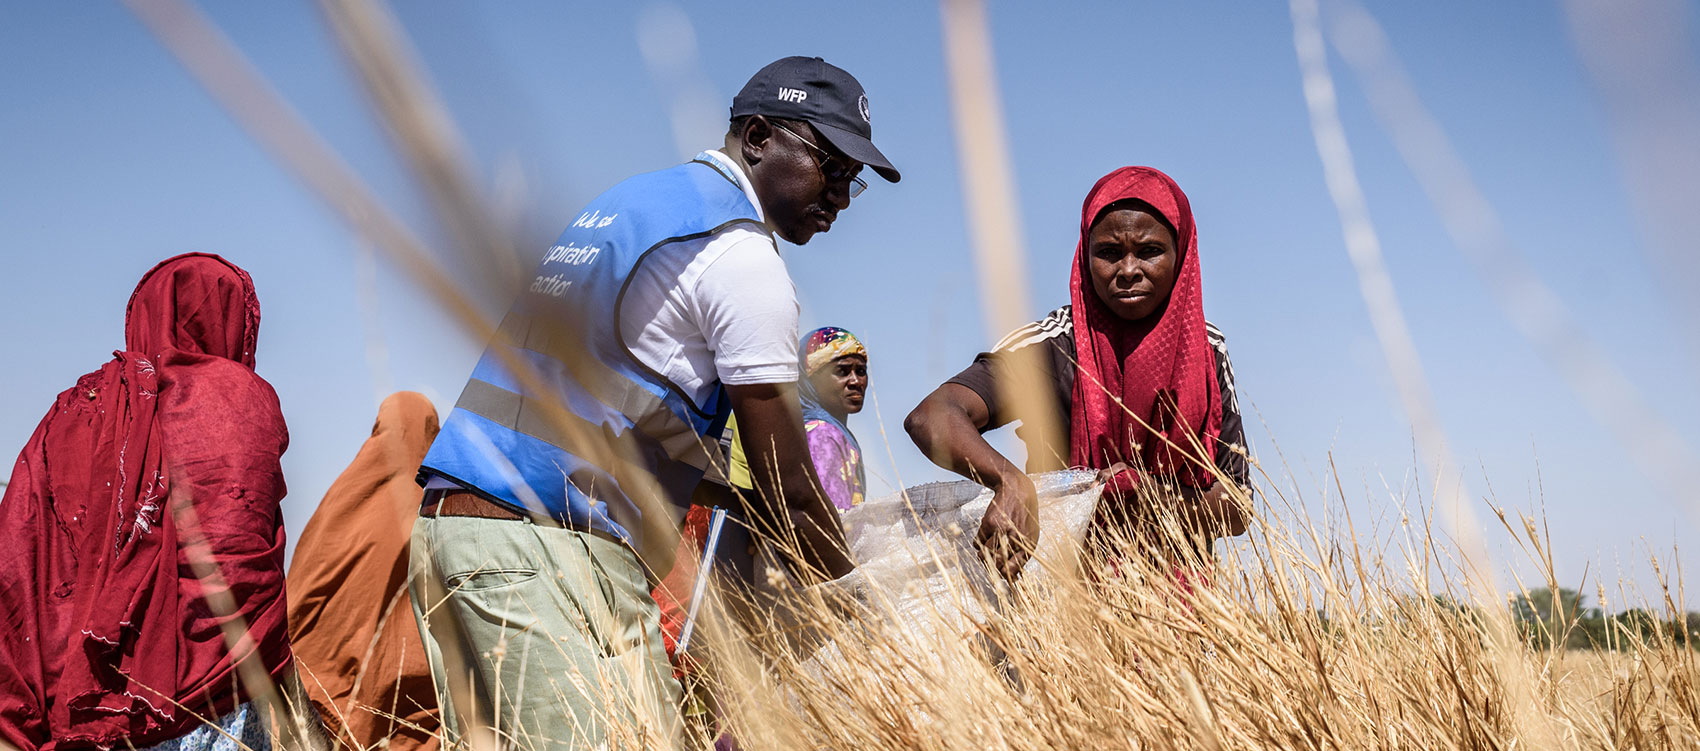 Ismael Abdou Mahamadou is a national UN Volunteer supporting the World Food Program in Maradi, Niger, as Field Monitor Assistant. Here, he participates in training on quality seed collection, as part of participatory community planning.